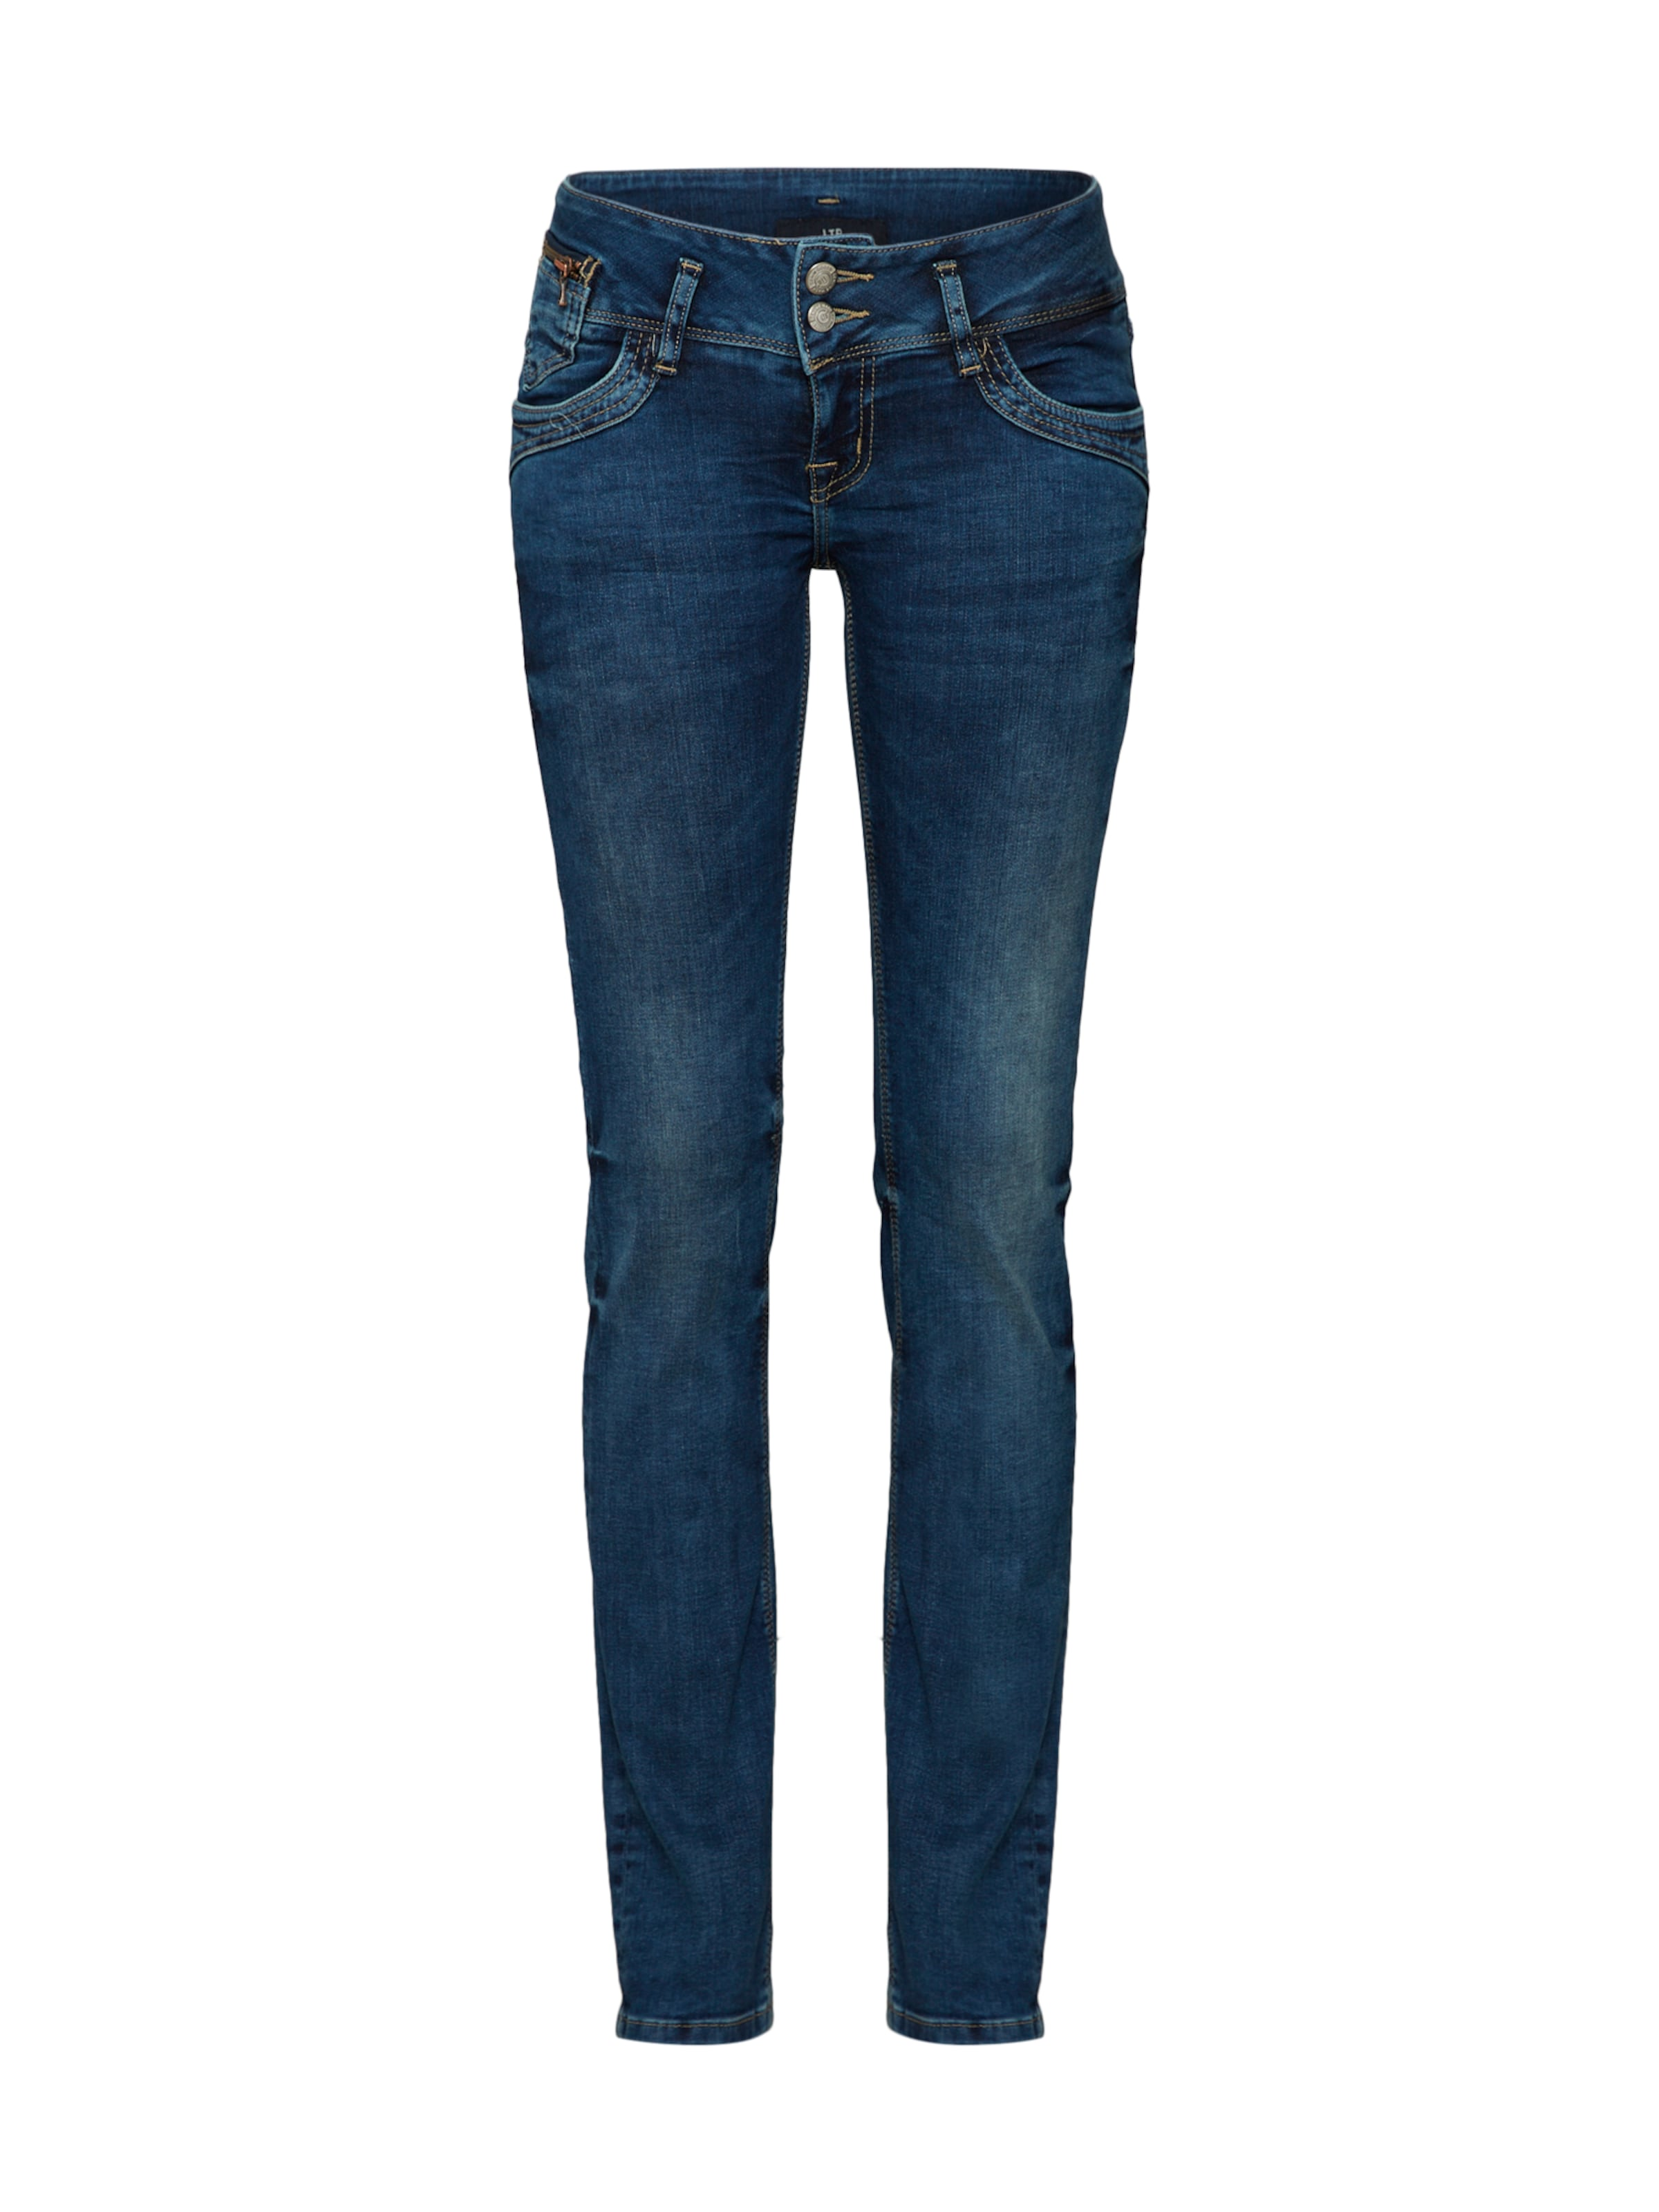 Ltb 'jonquil' Denim Blau In Stretchige c3RqA54jL